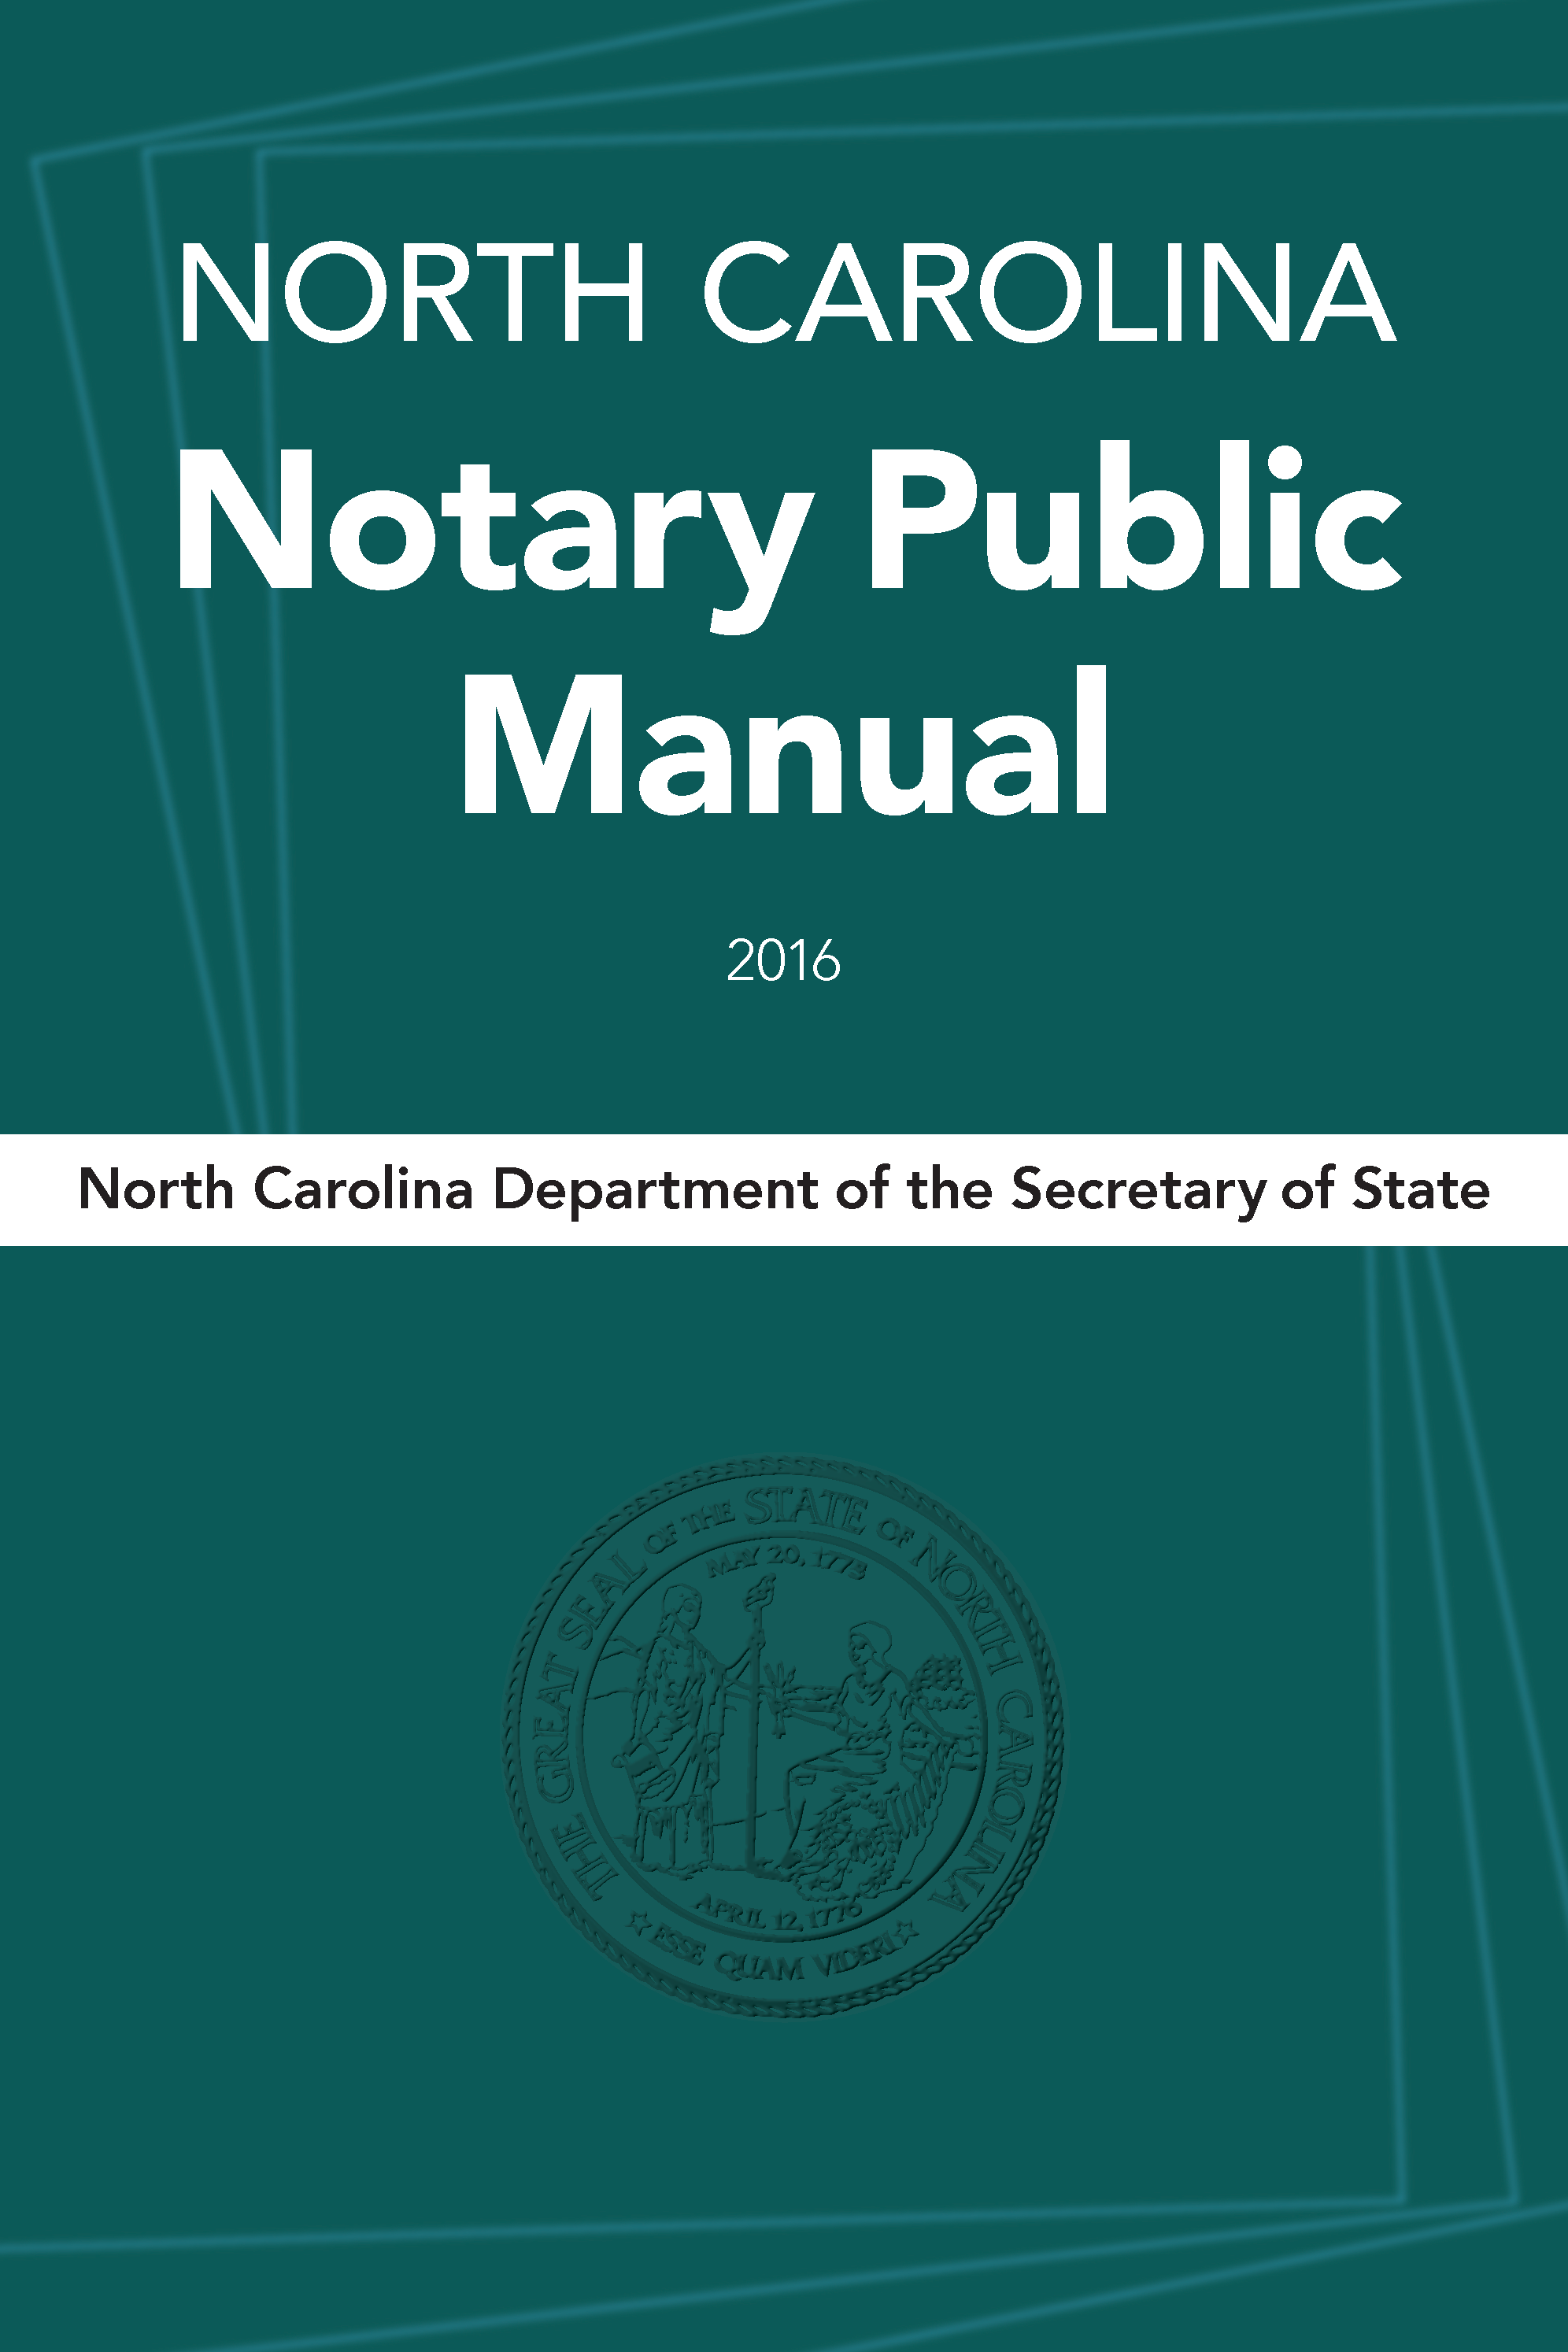 North Carolina Secretary of State Notary Notary Resources